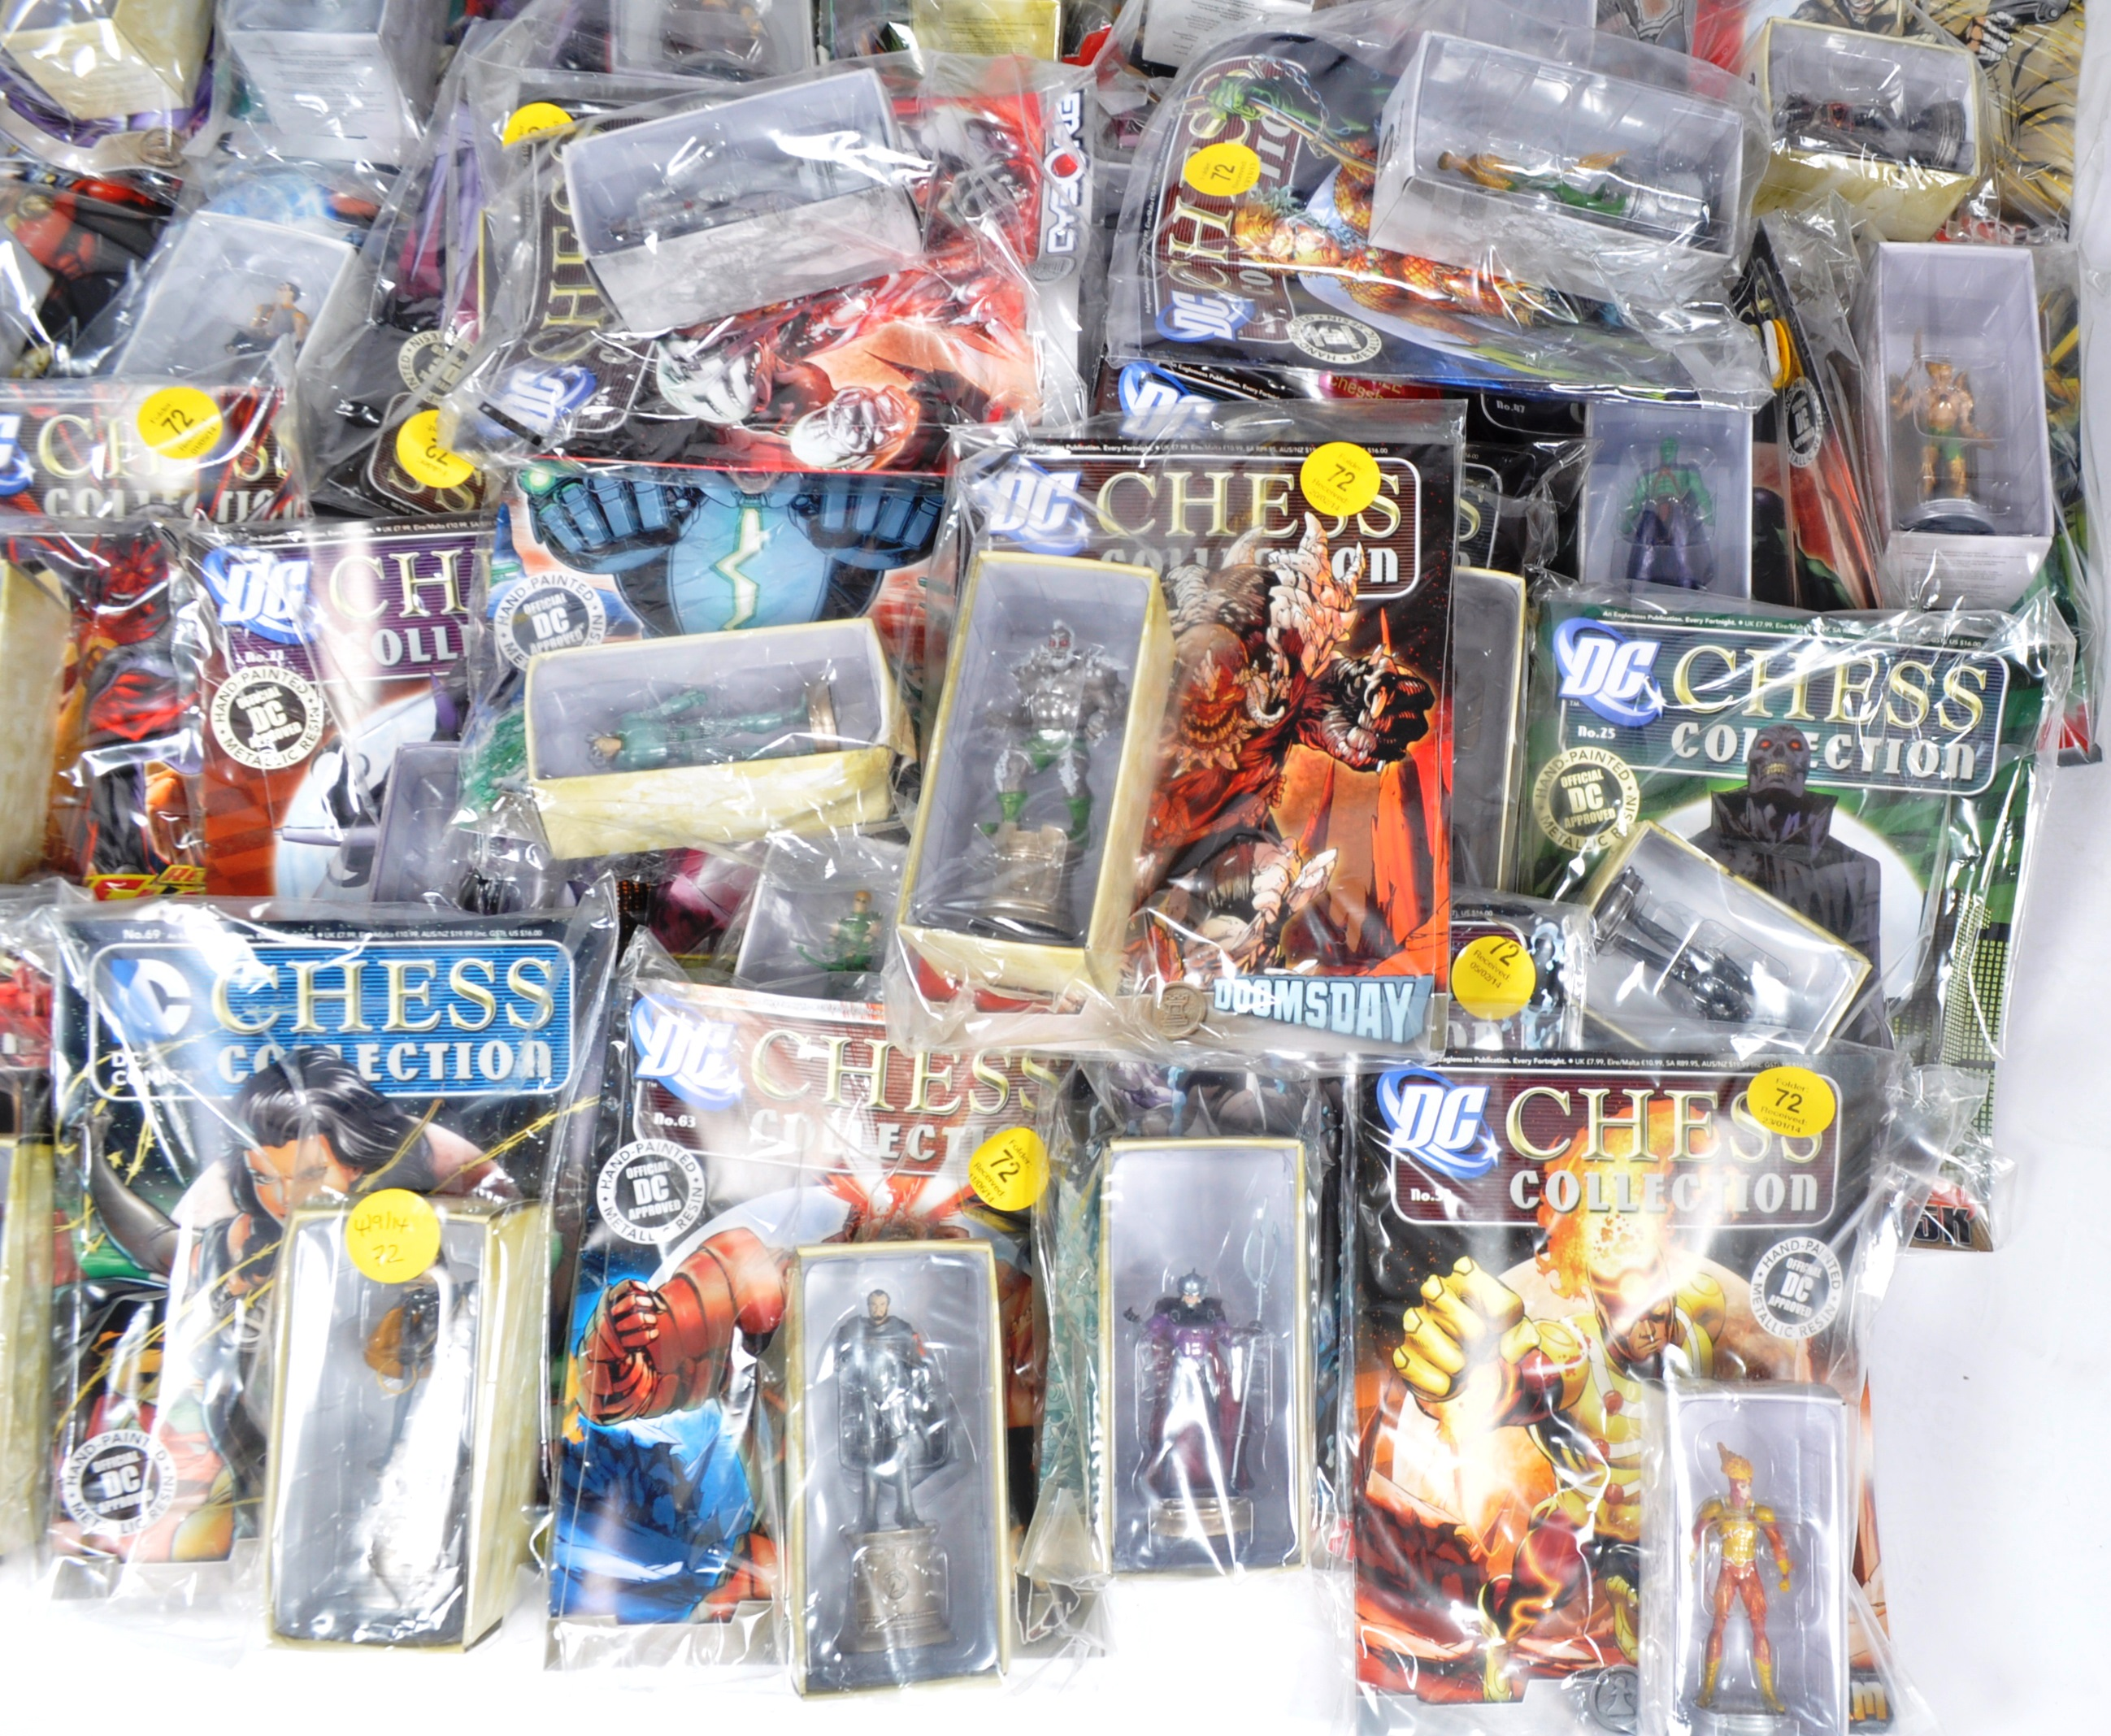 LARGE COLLECTION OF ASSORTED DC COMICS COLLECTIBLE CHESS PIECES - Image 4 of 6